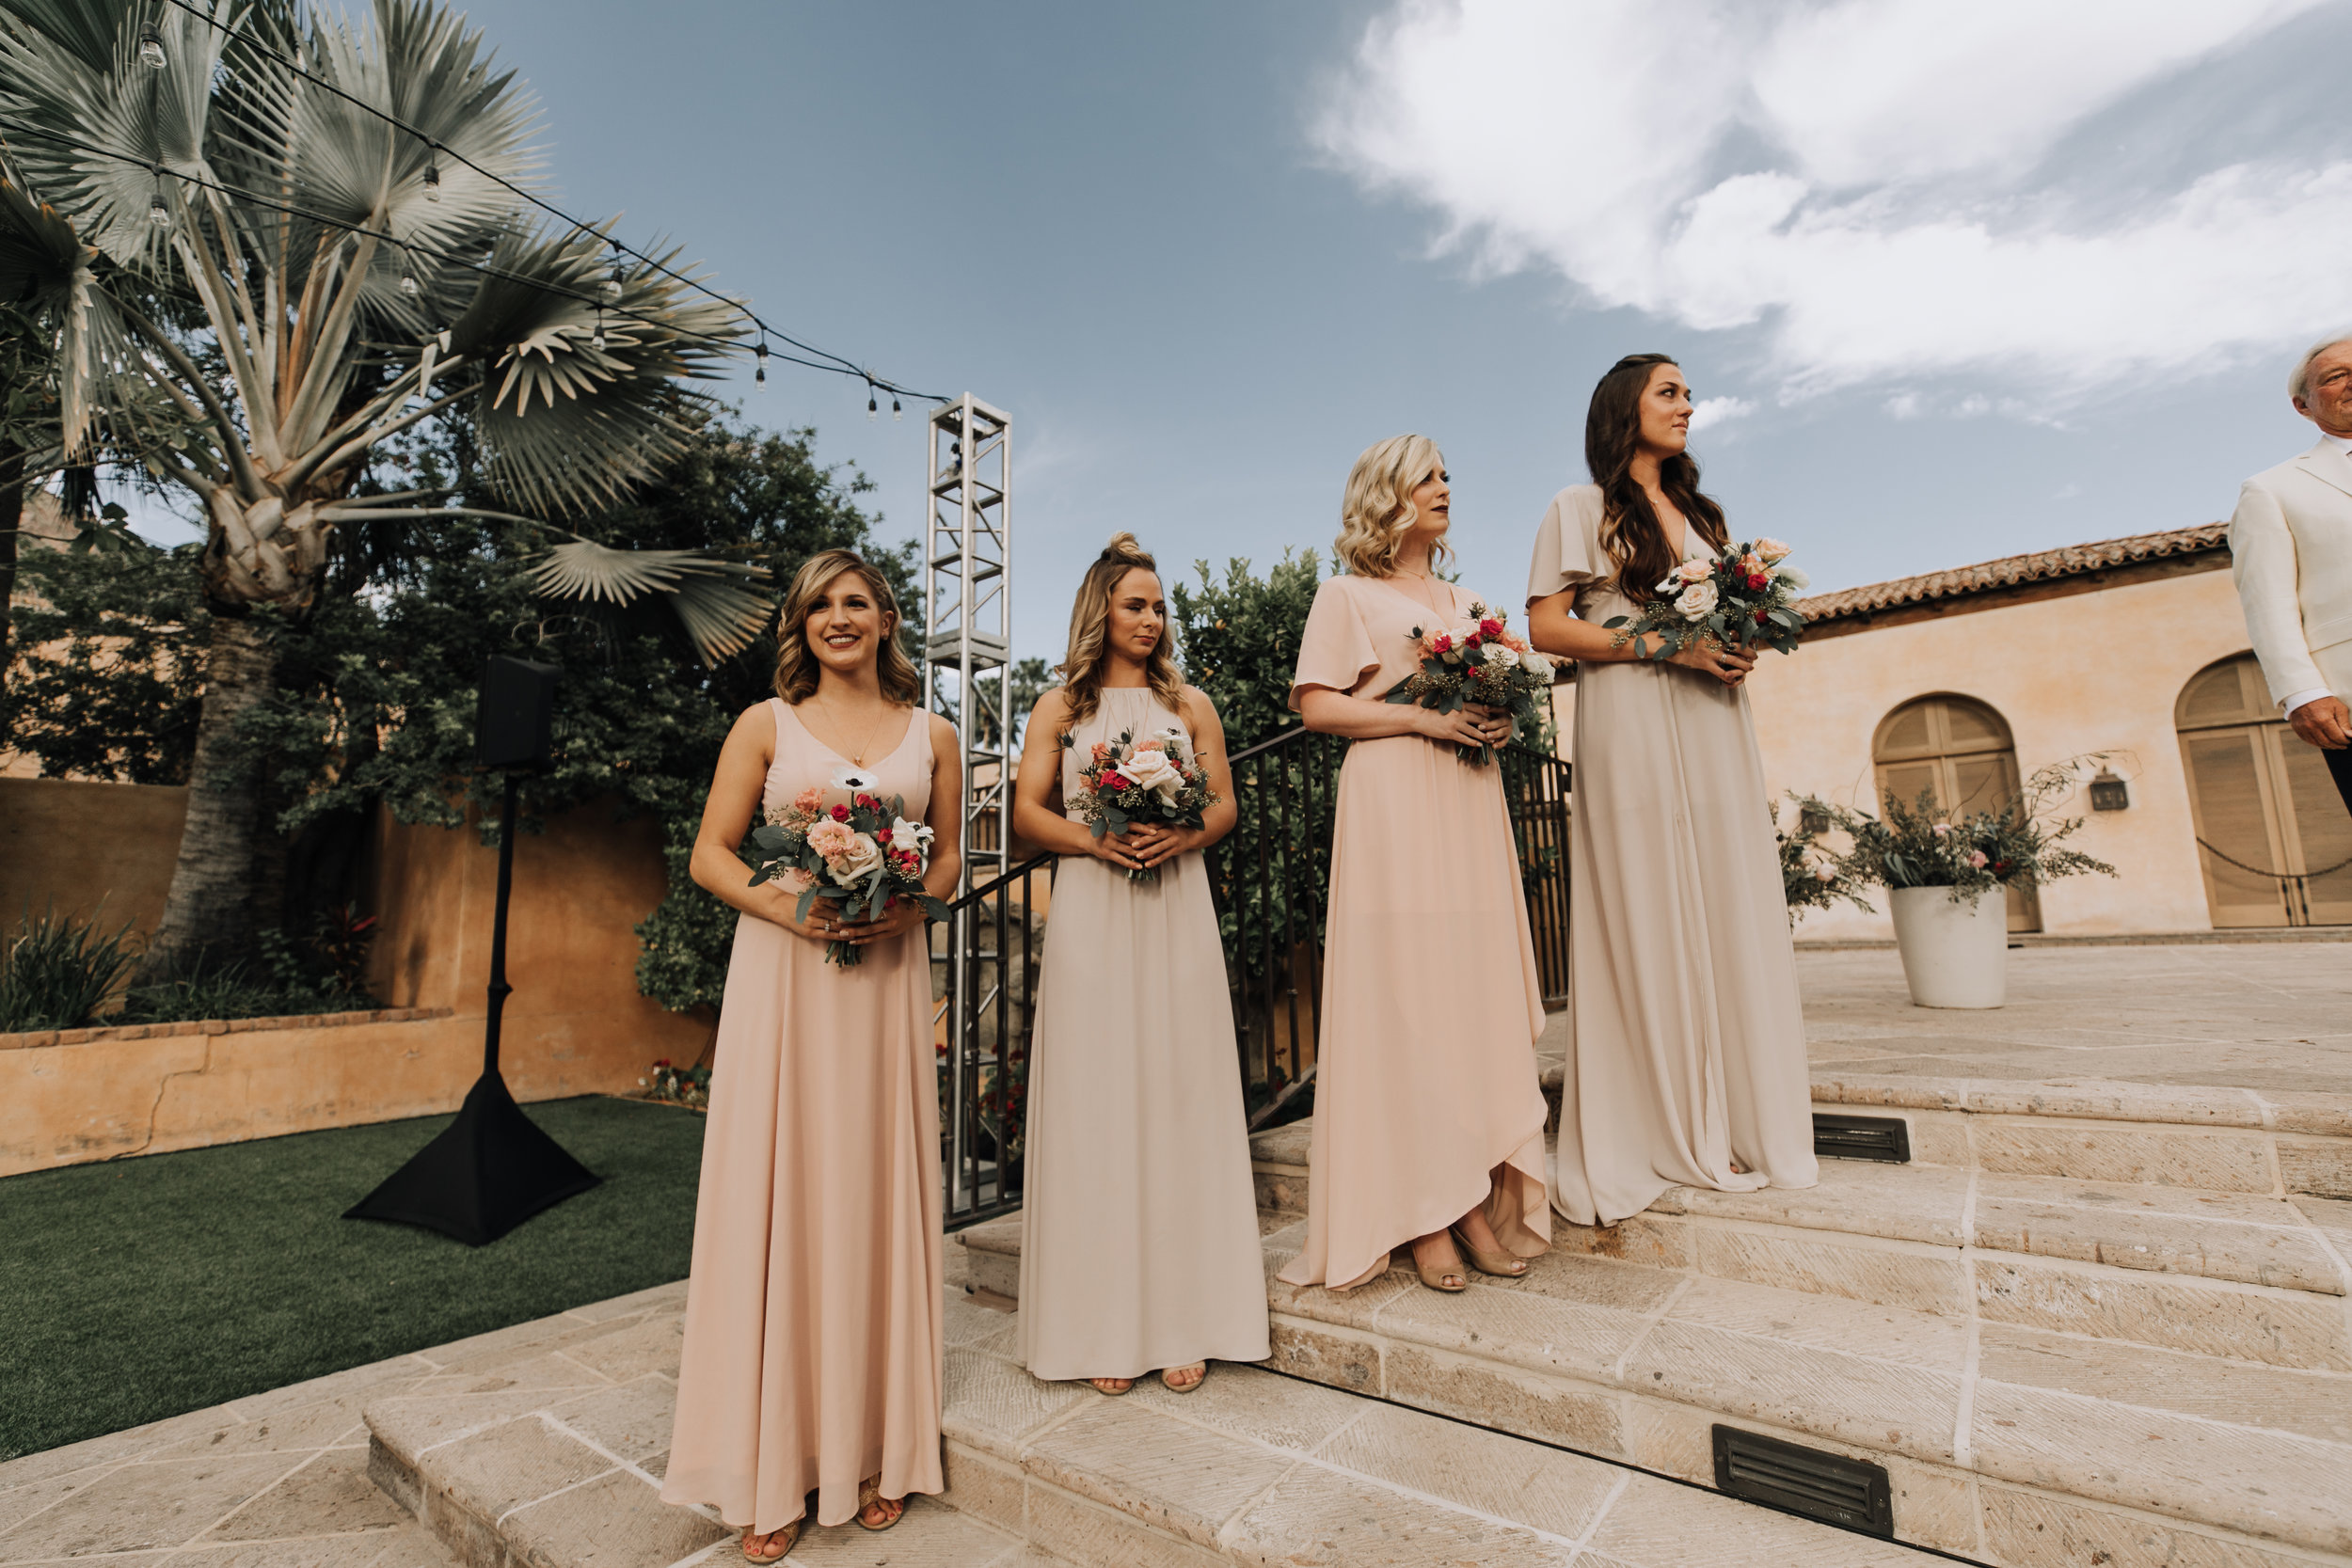 Bridal Party in Nude Gowns at ceremony